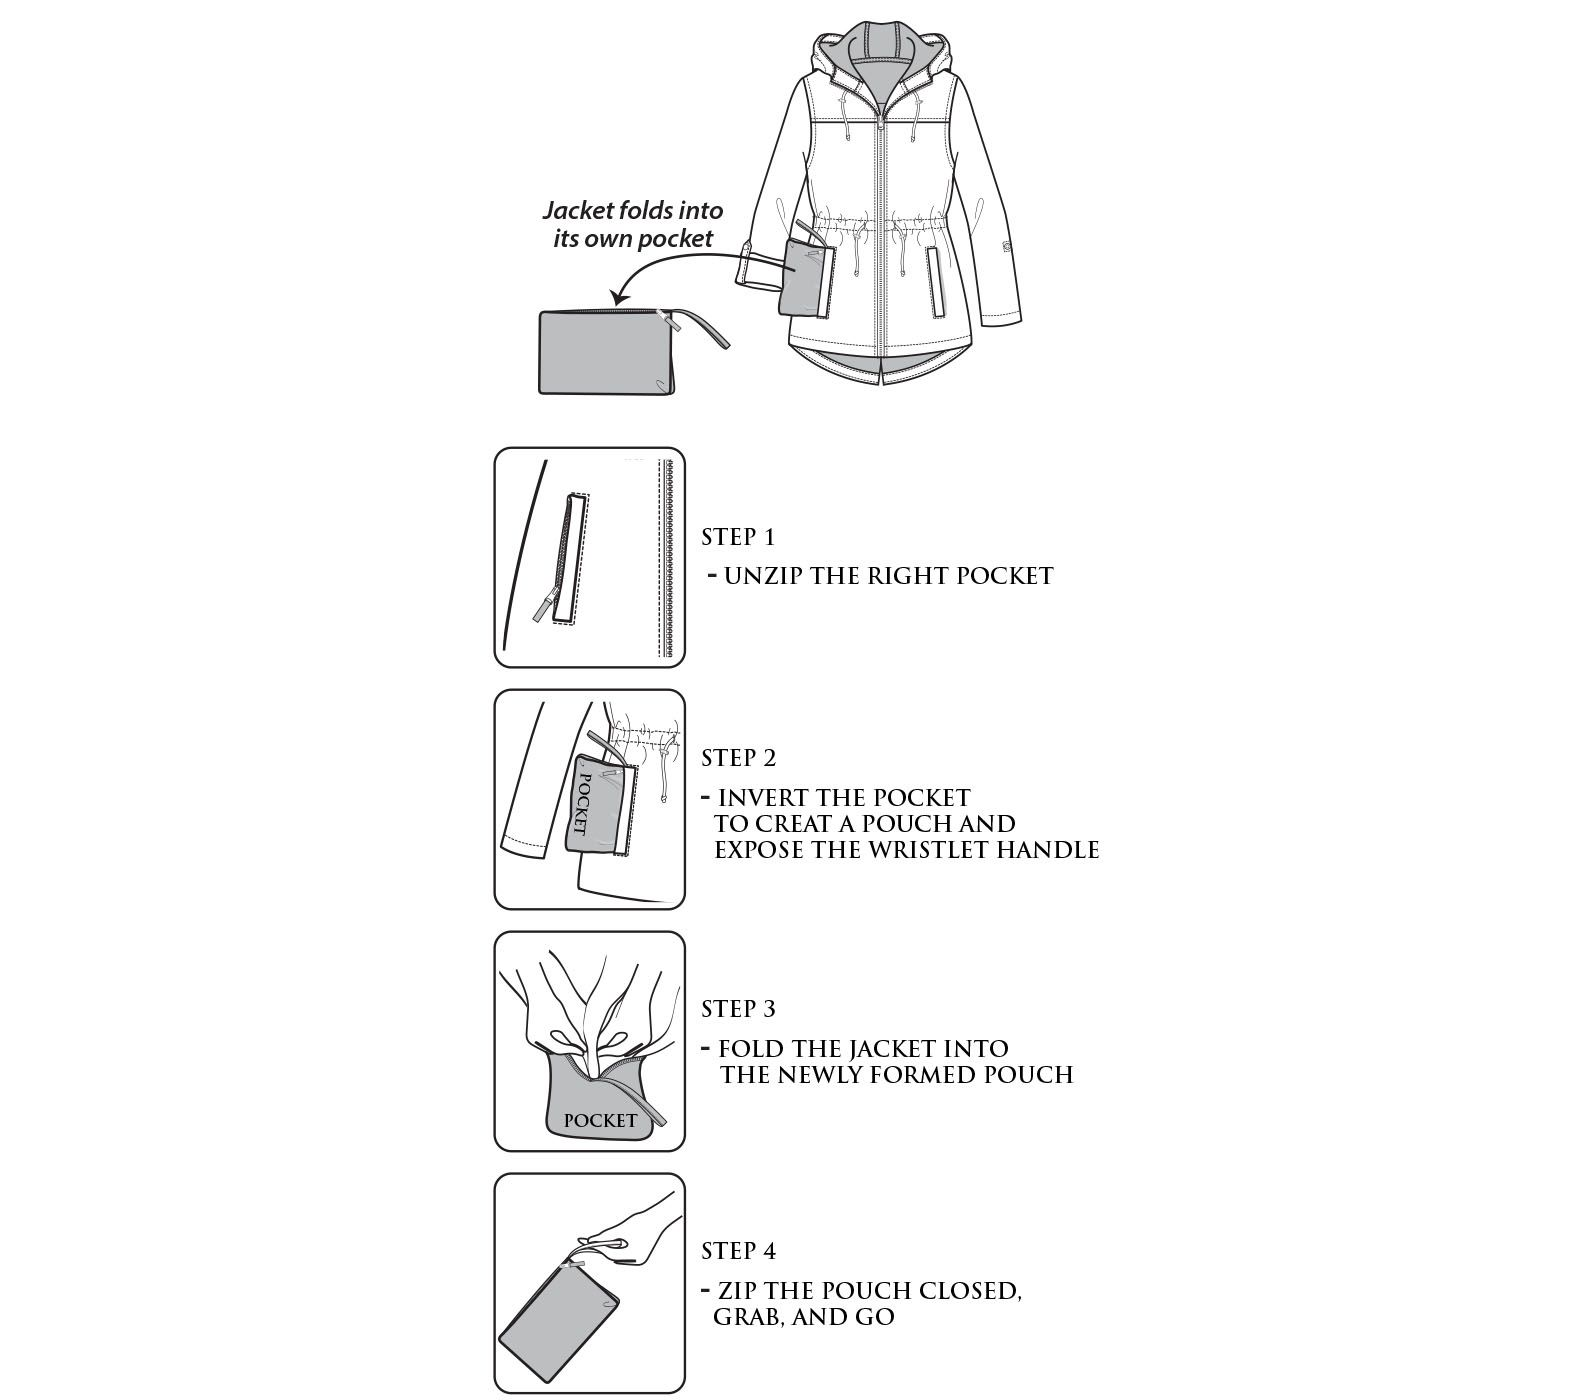 Parka in a pocket how to fold